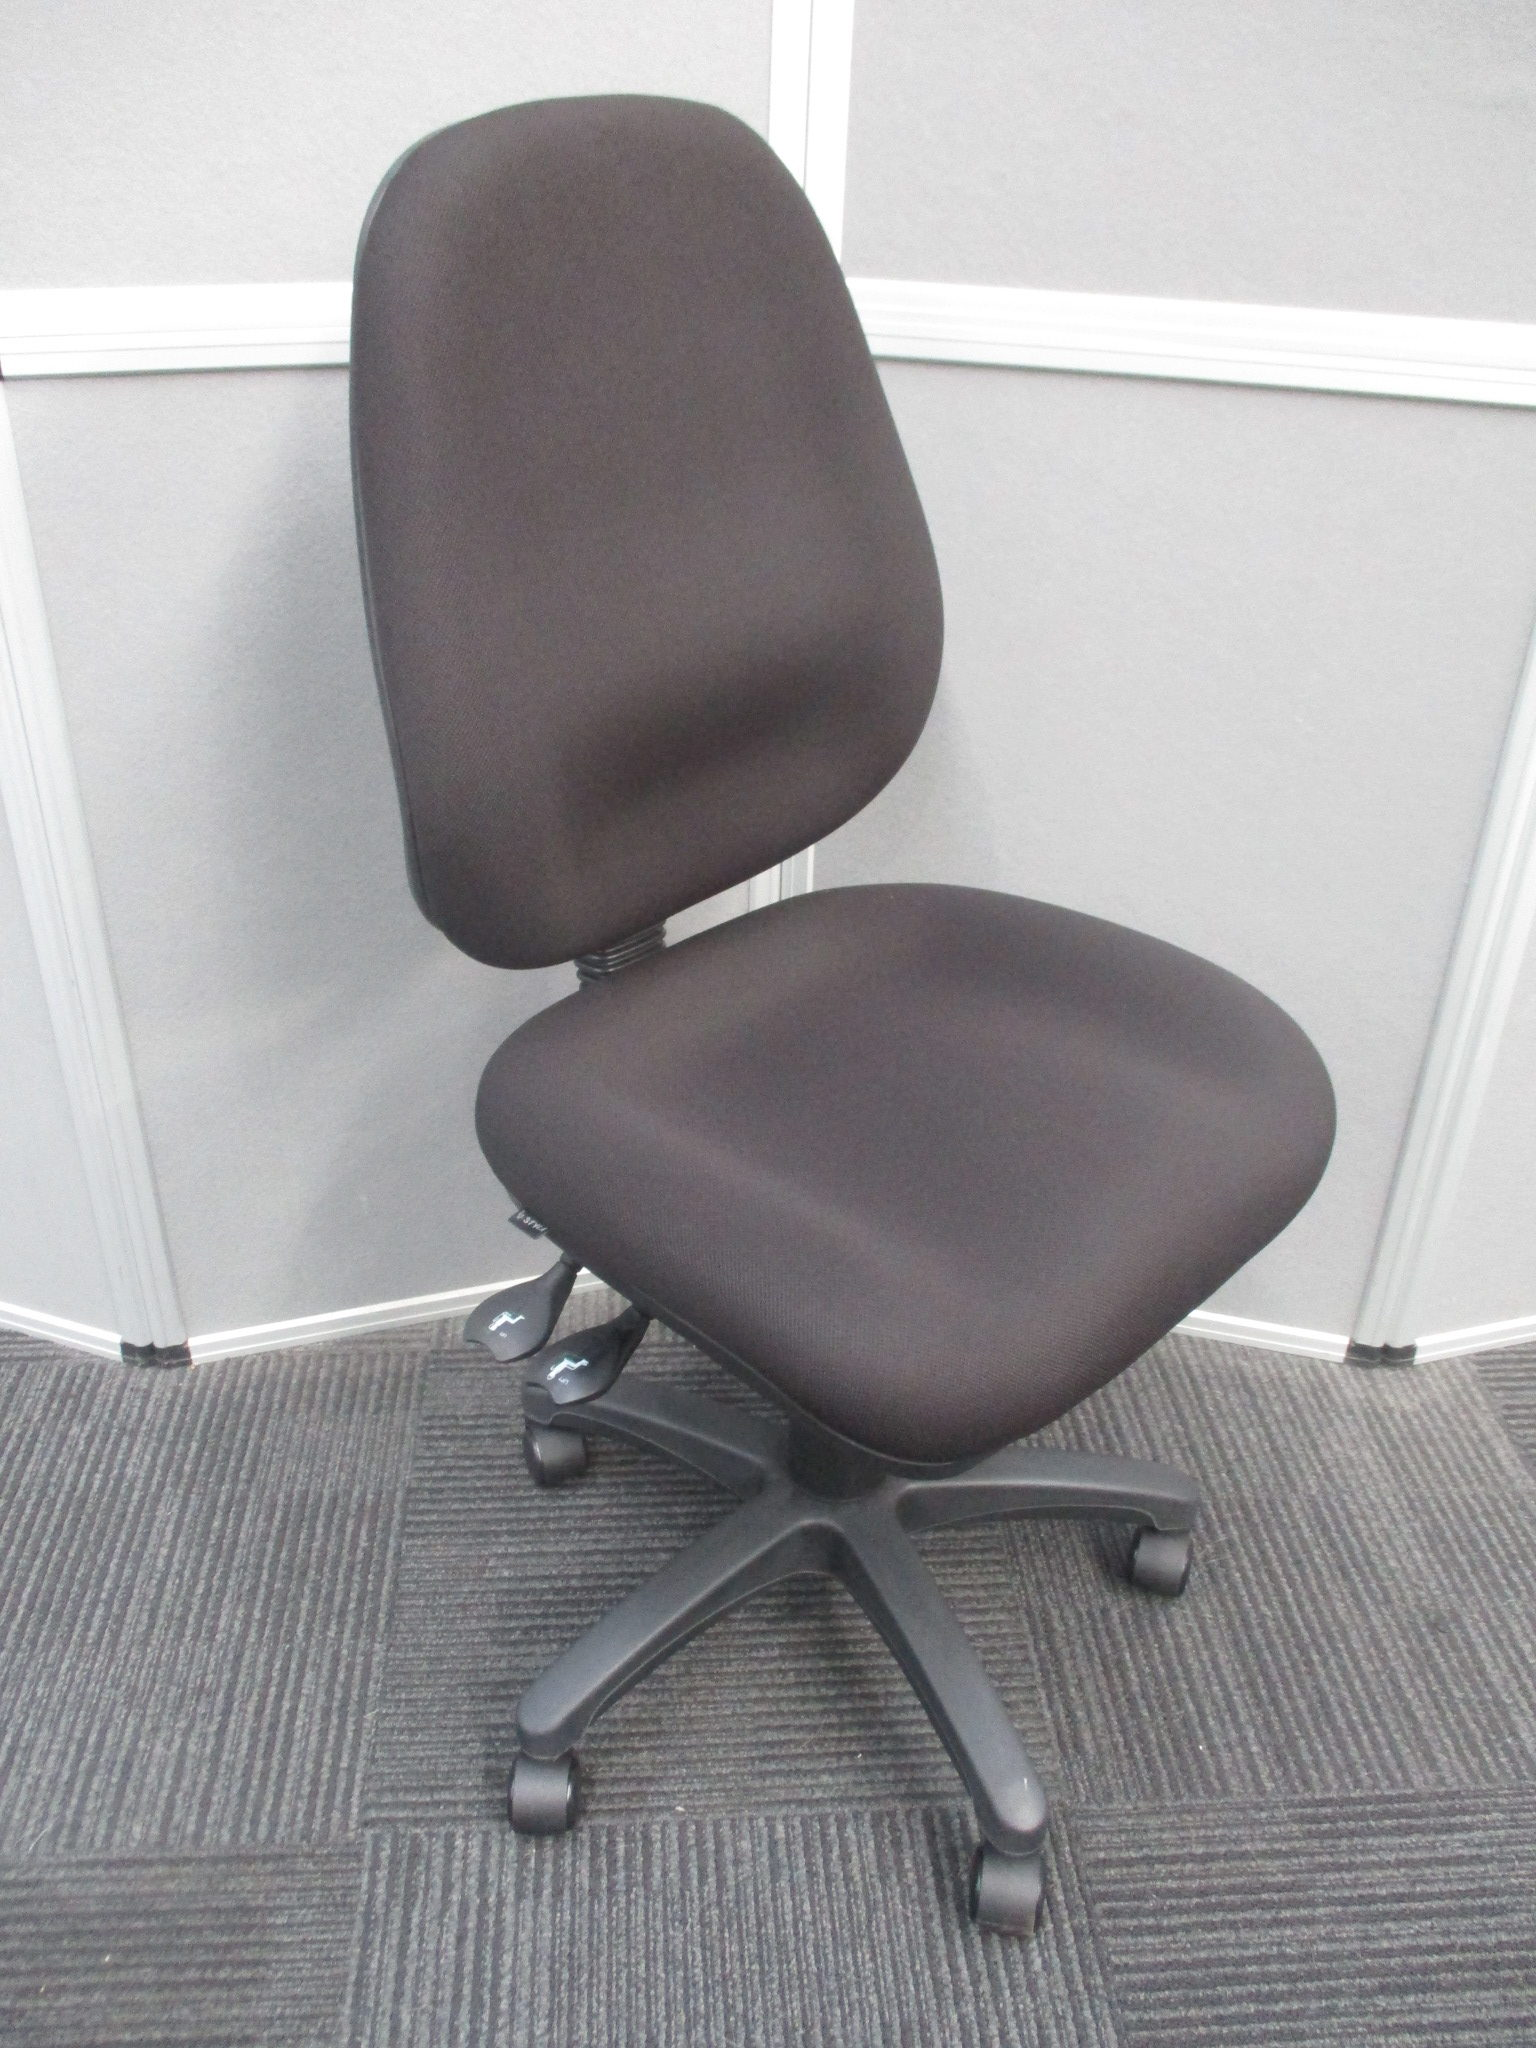 New P350 HB Chairs $225